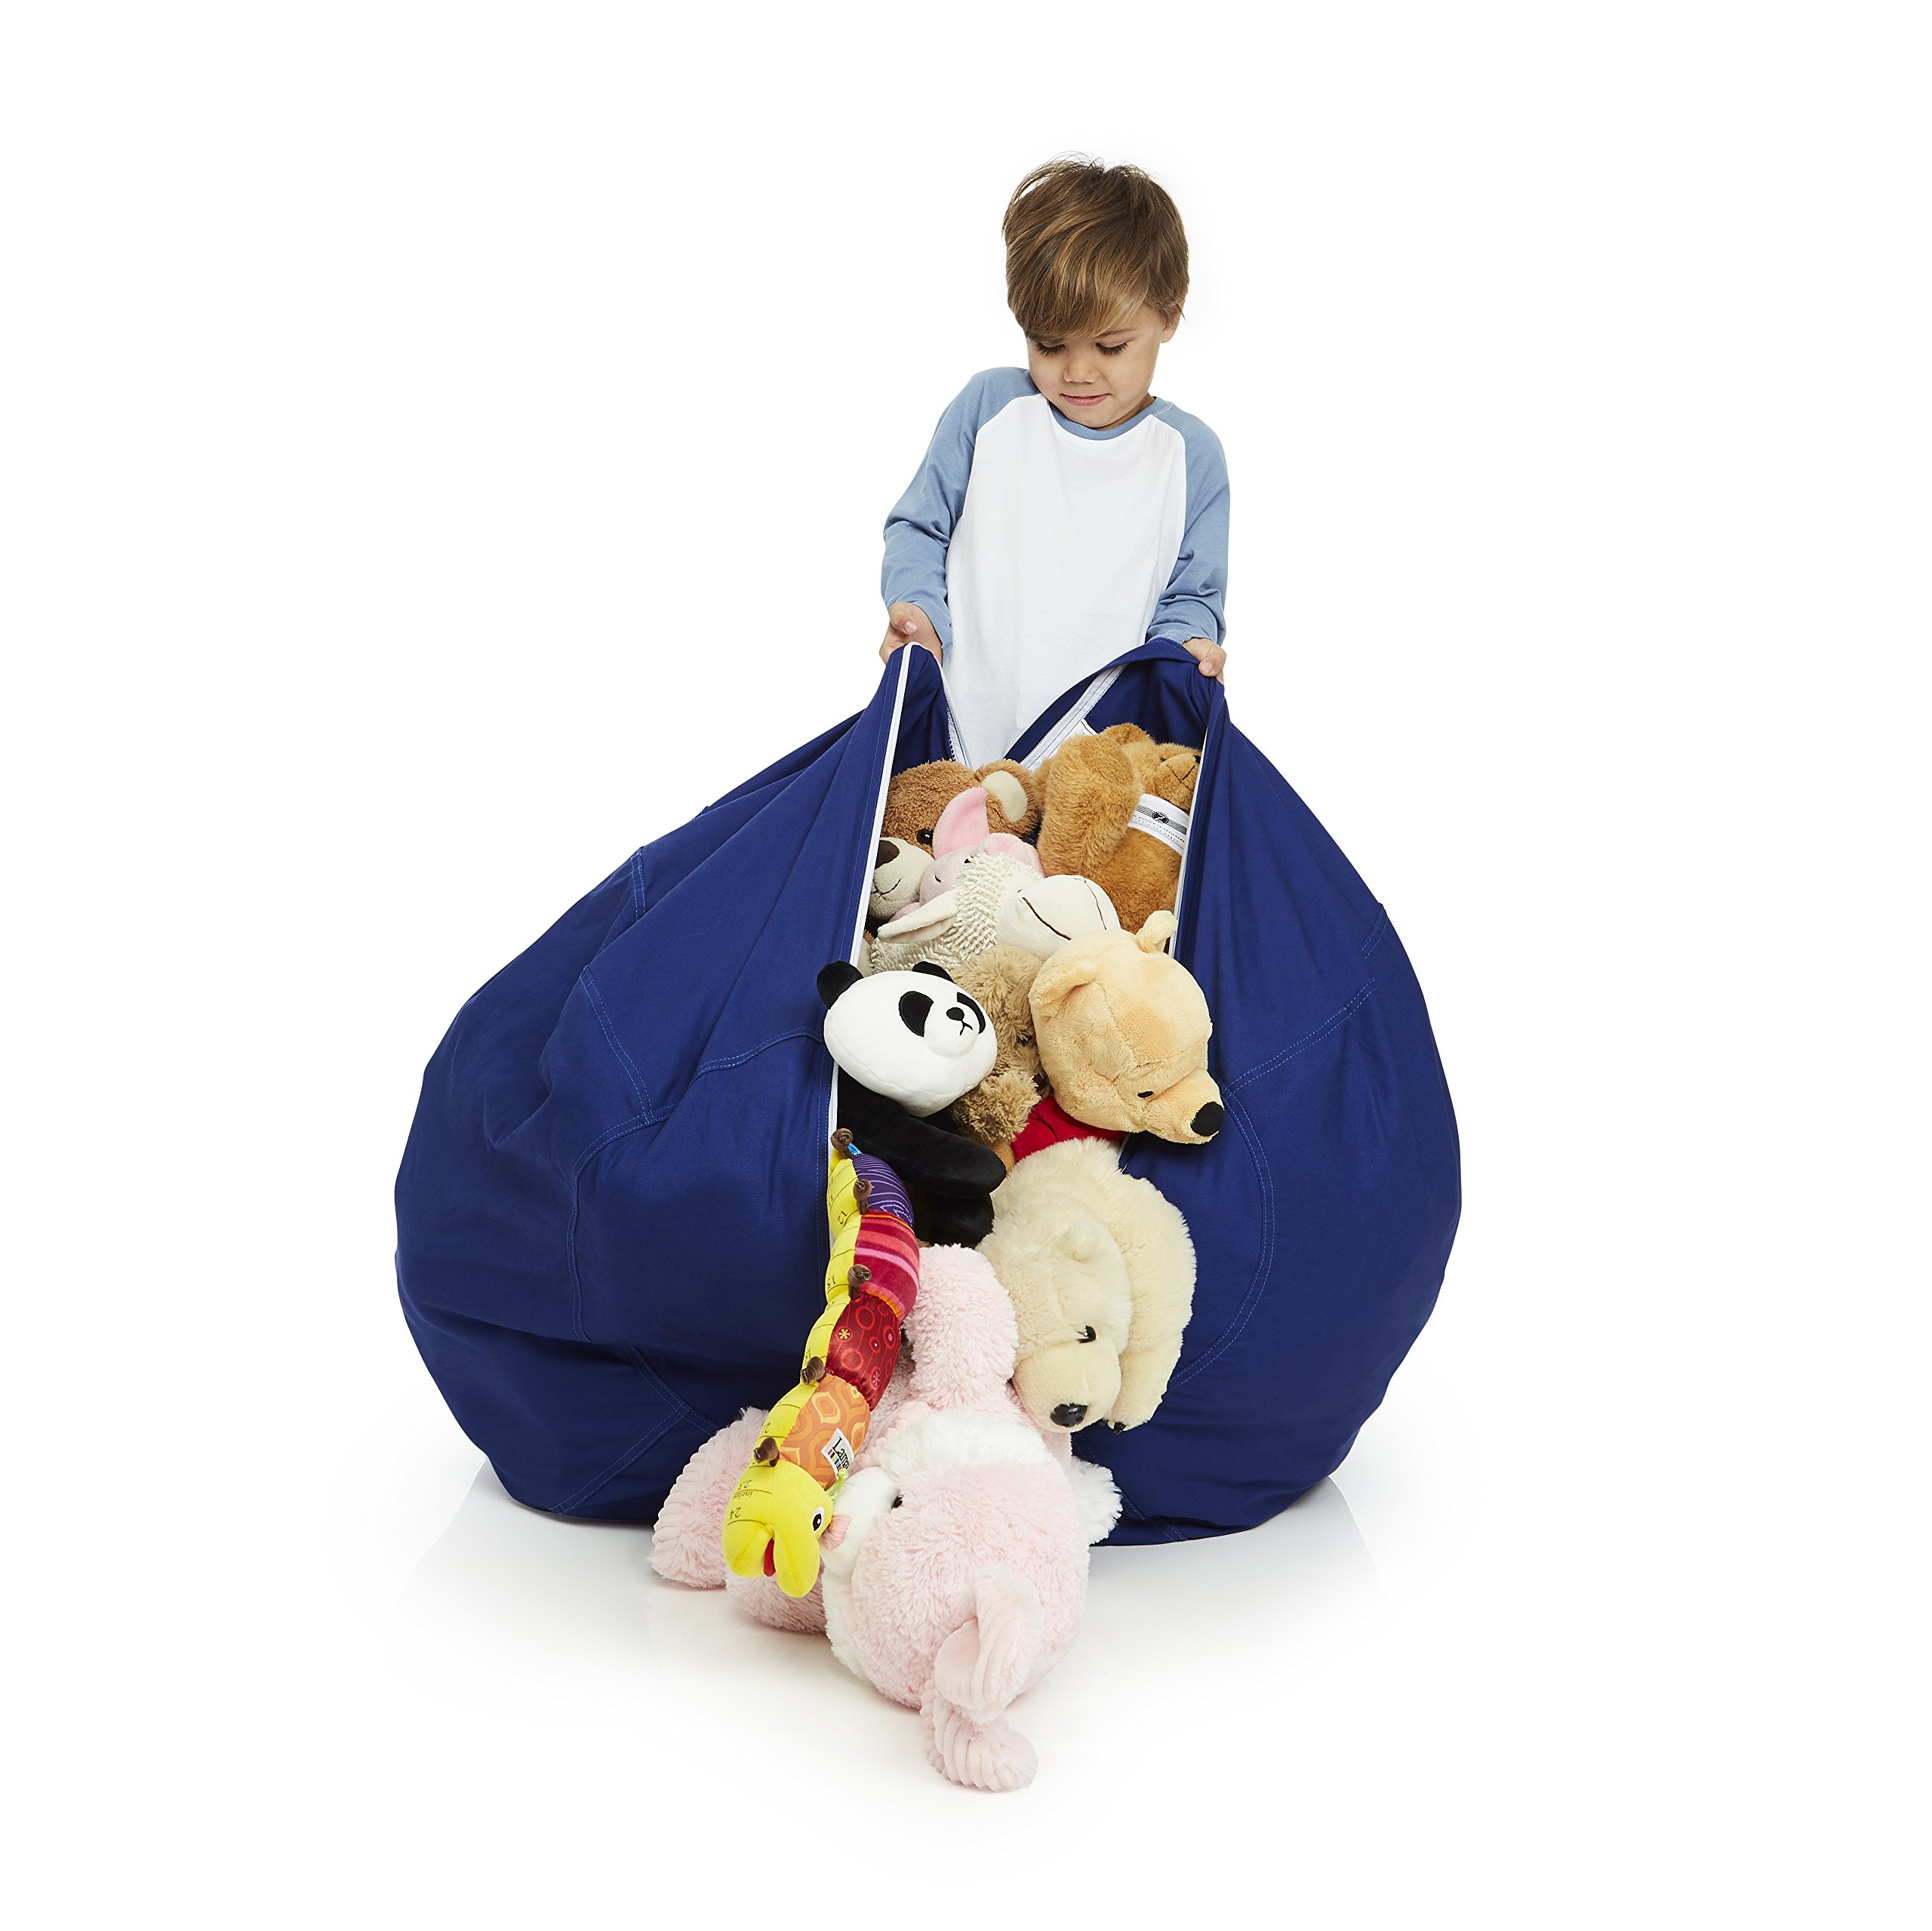 Delmach Stuffed Animal Storage Bean Bag Chair | 38'' Width Extra Large | Premium Double Stitched Cotton Canvas | Kids Blue Bean Bag Cover by Delmach (Image #2)